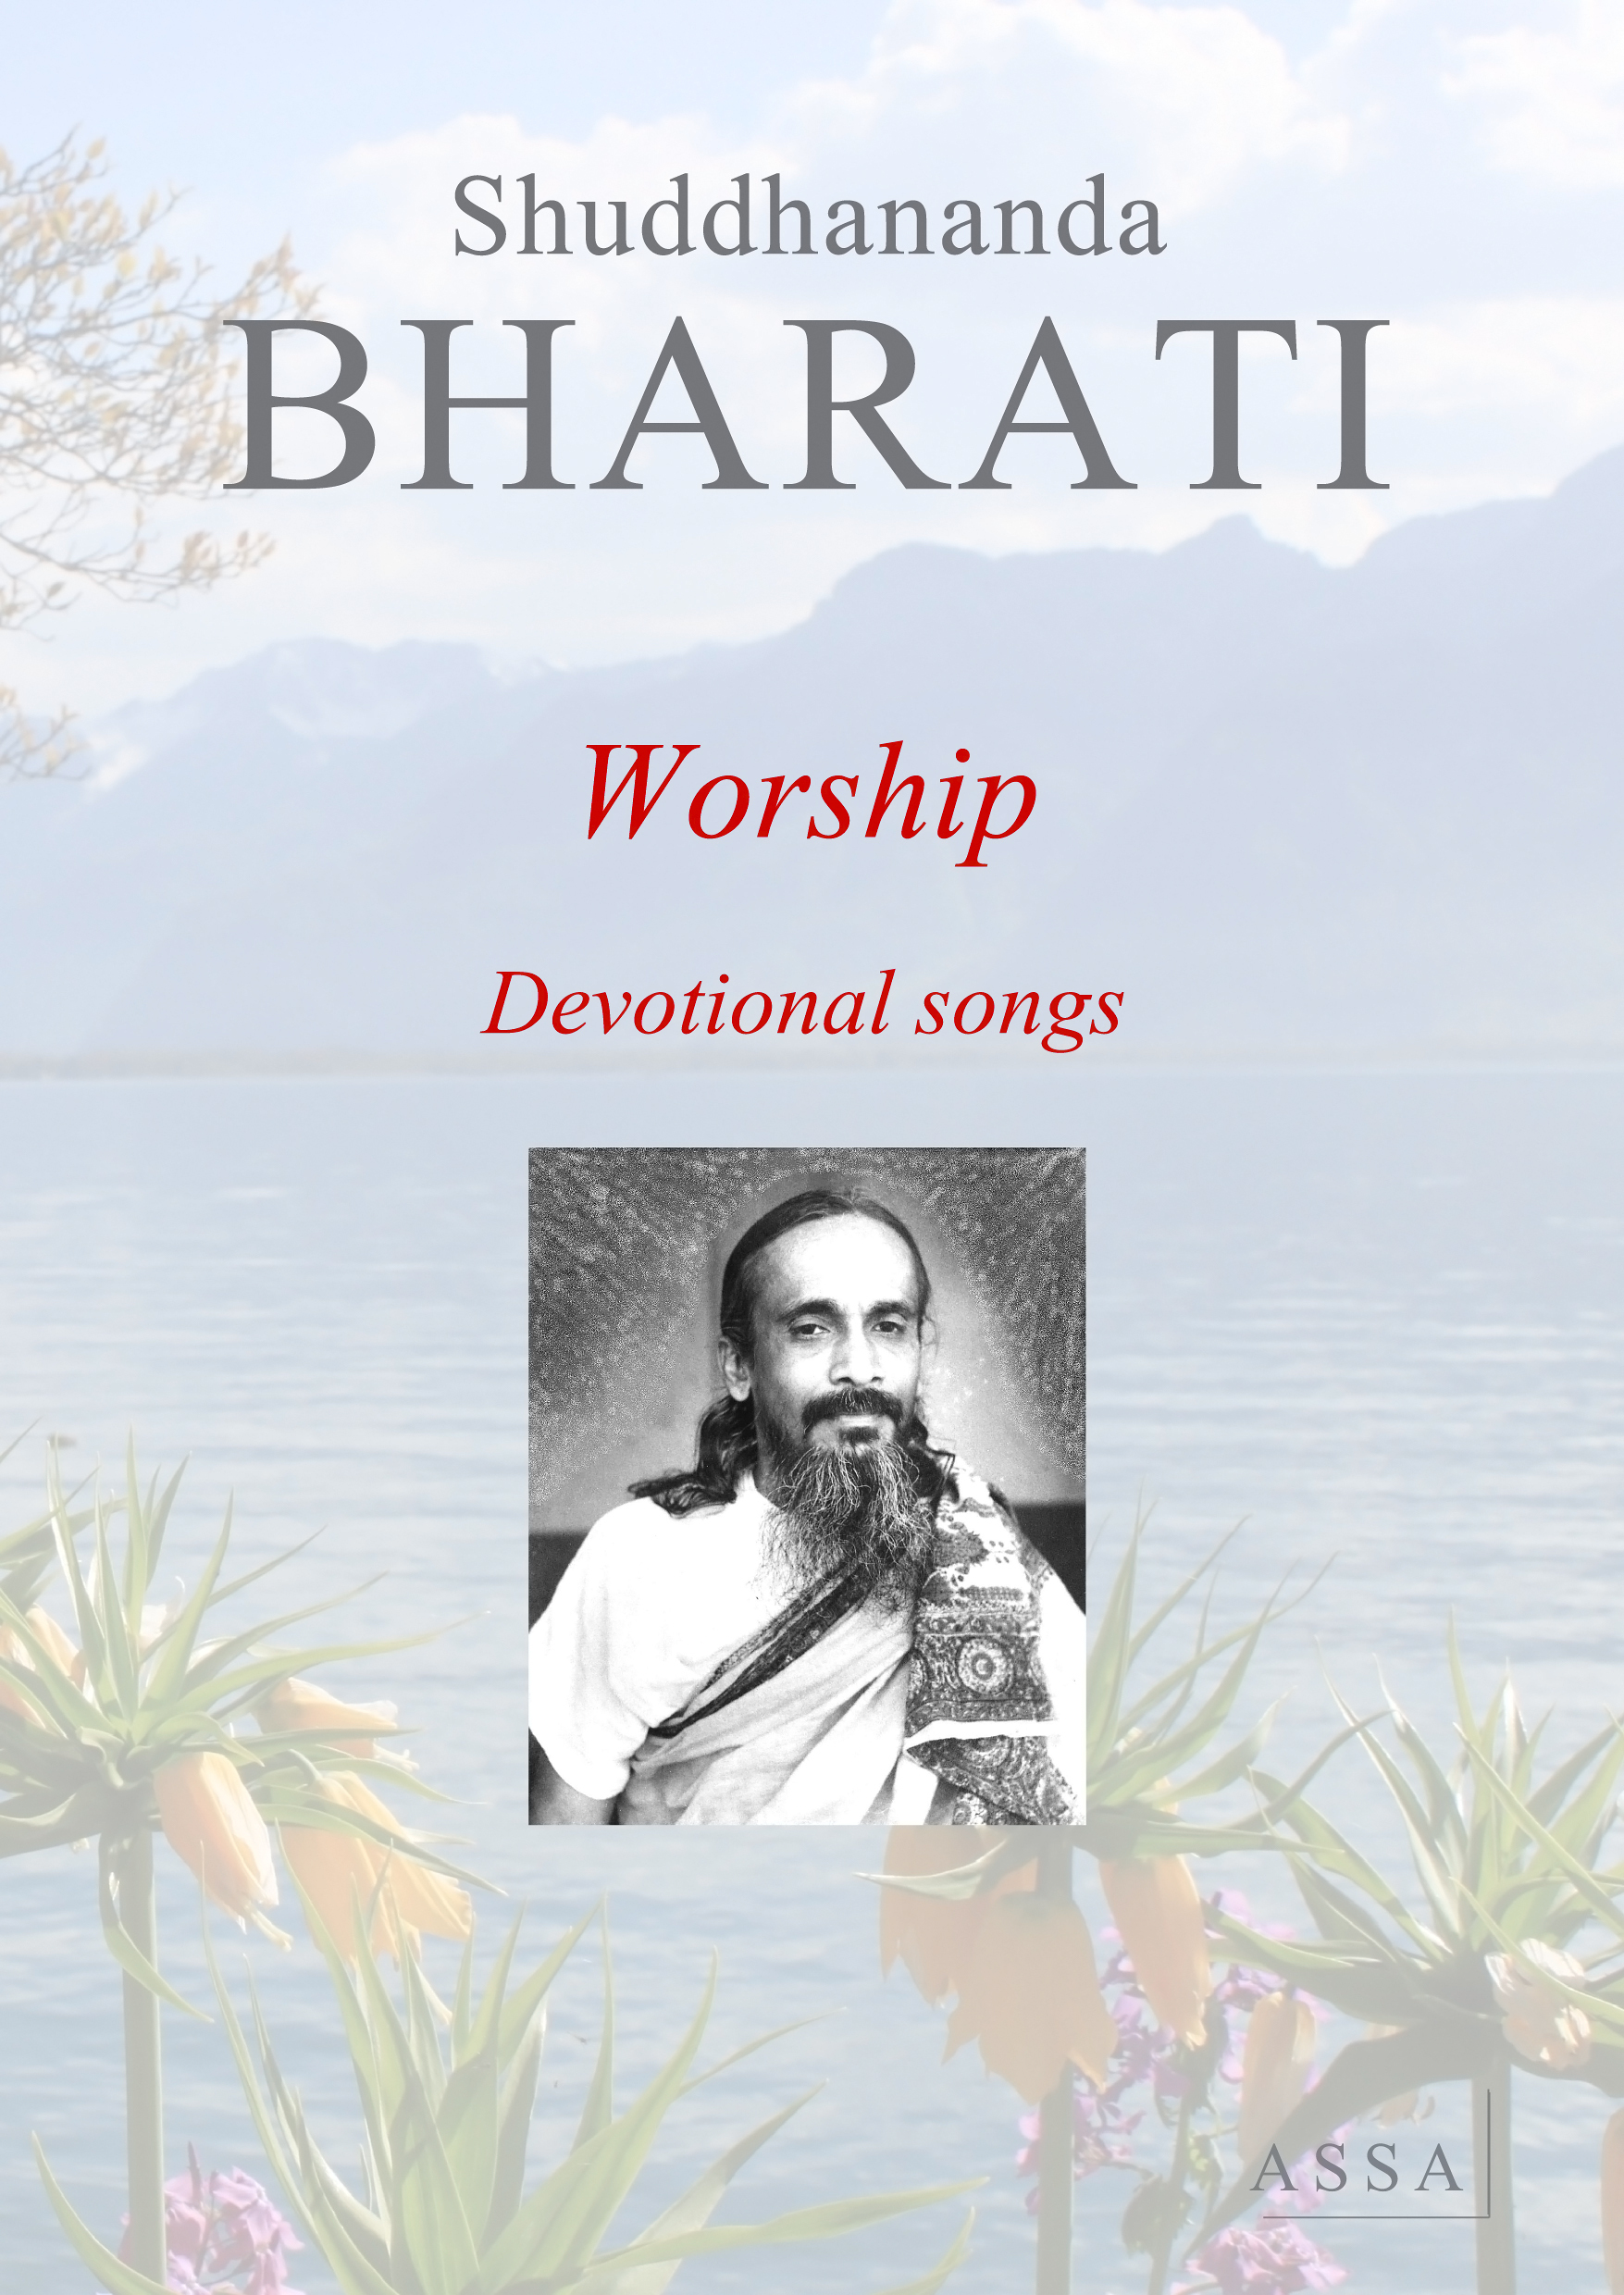 WORSHIP, DEVOTIONAL SONGS